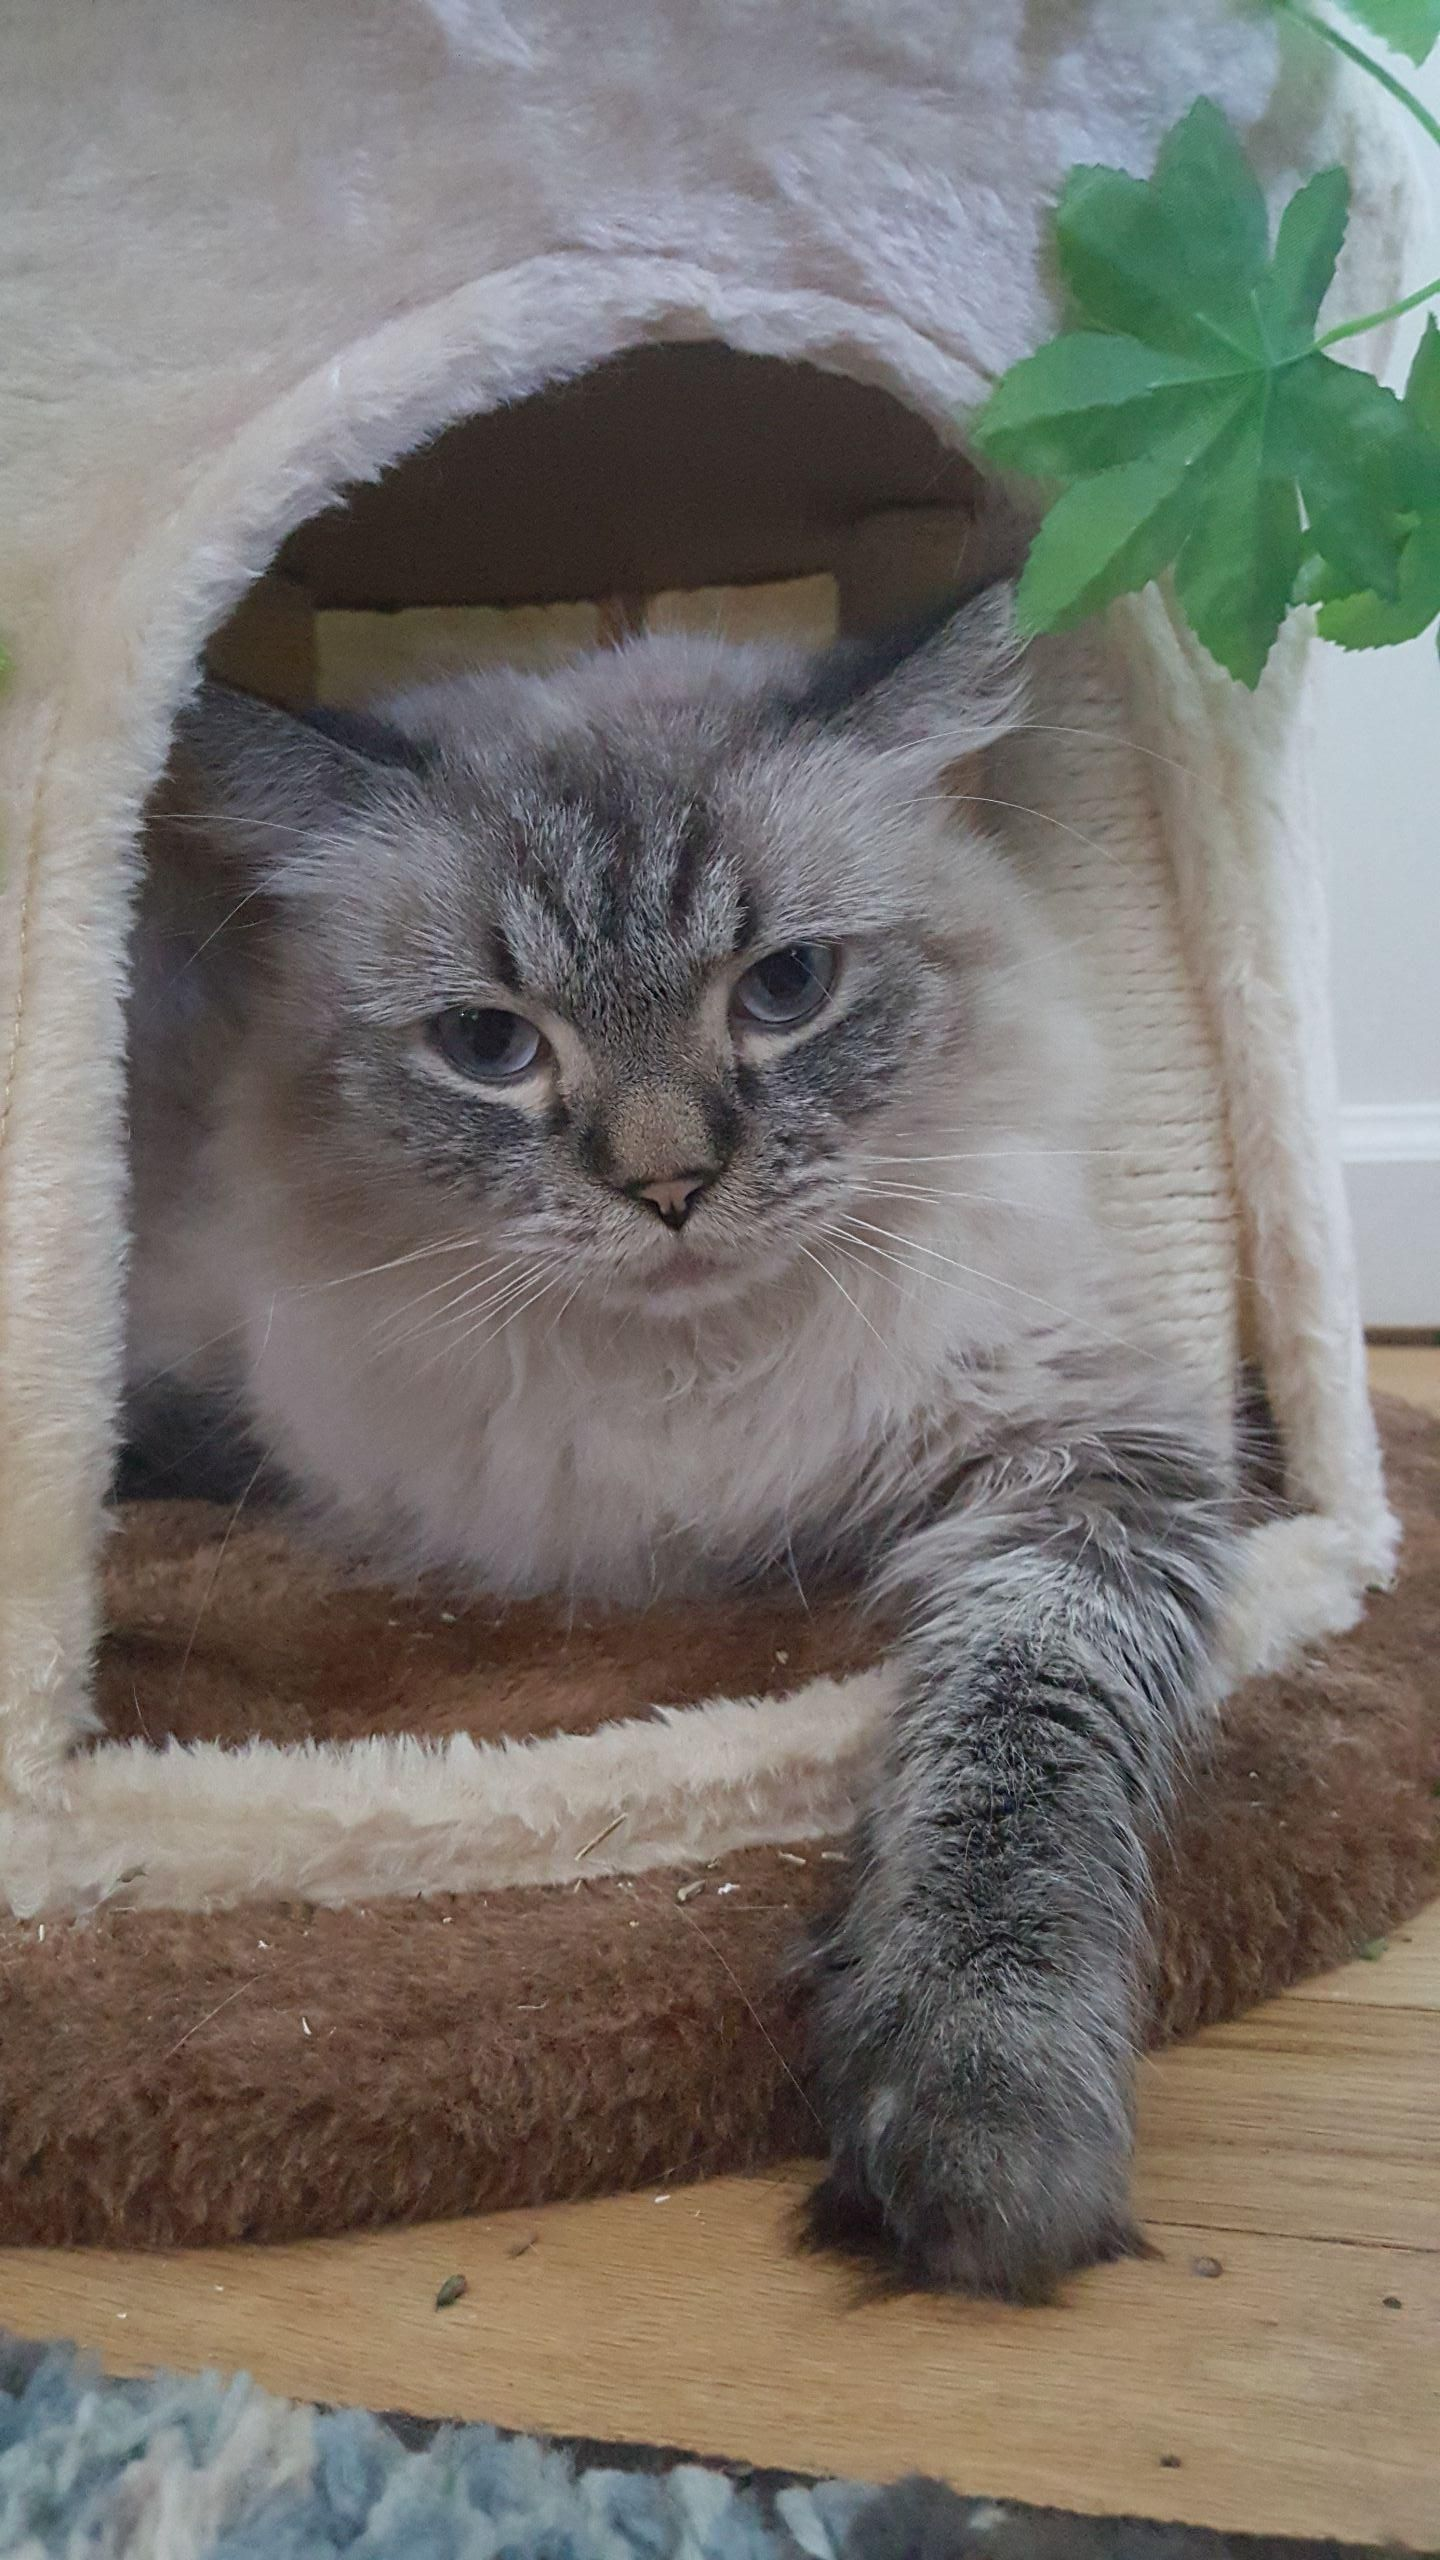 Can someone help me figure out what breed my cat is